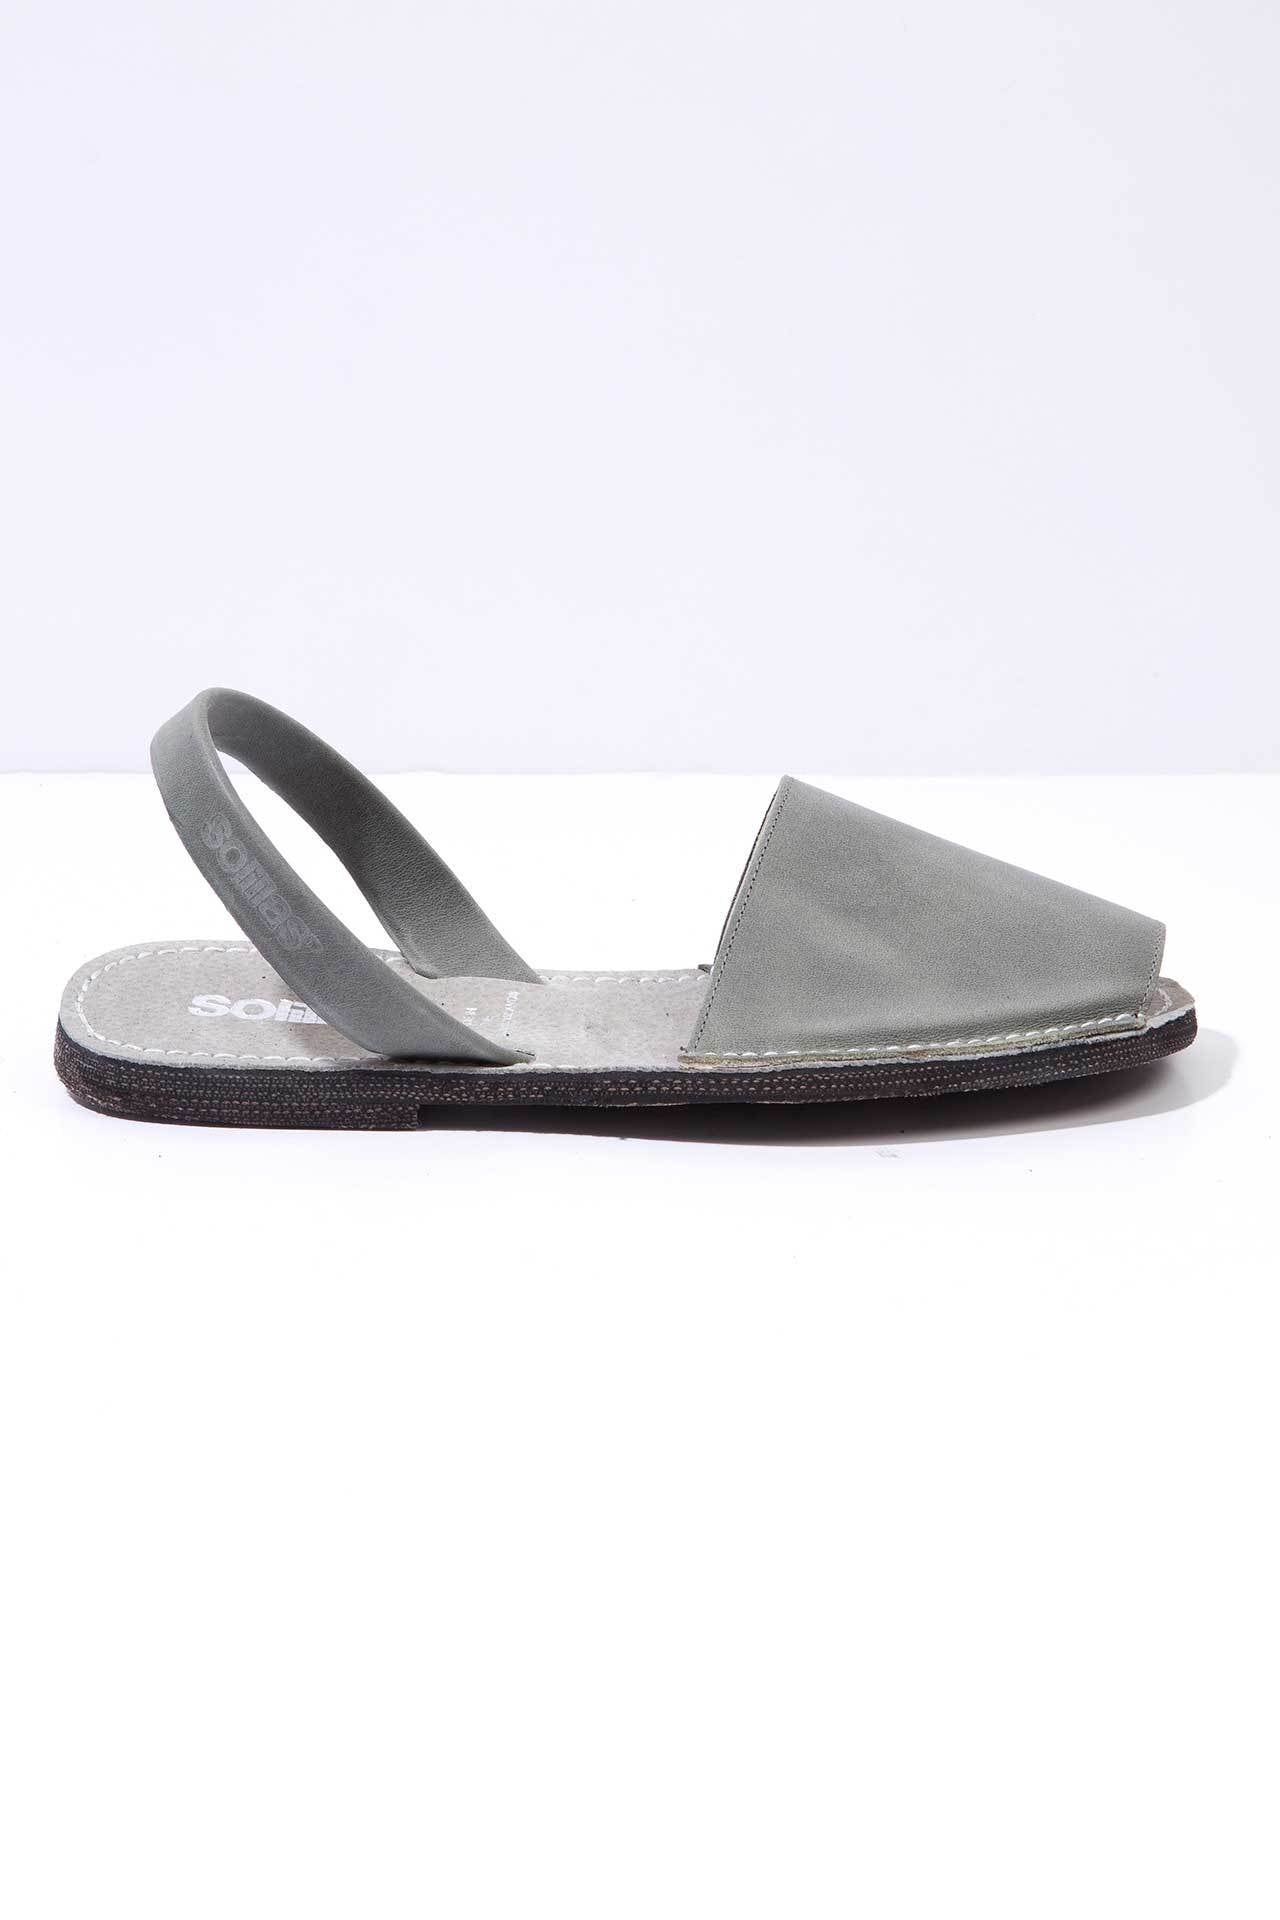 Carbono - Leather Tyre Sole sandals